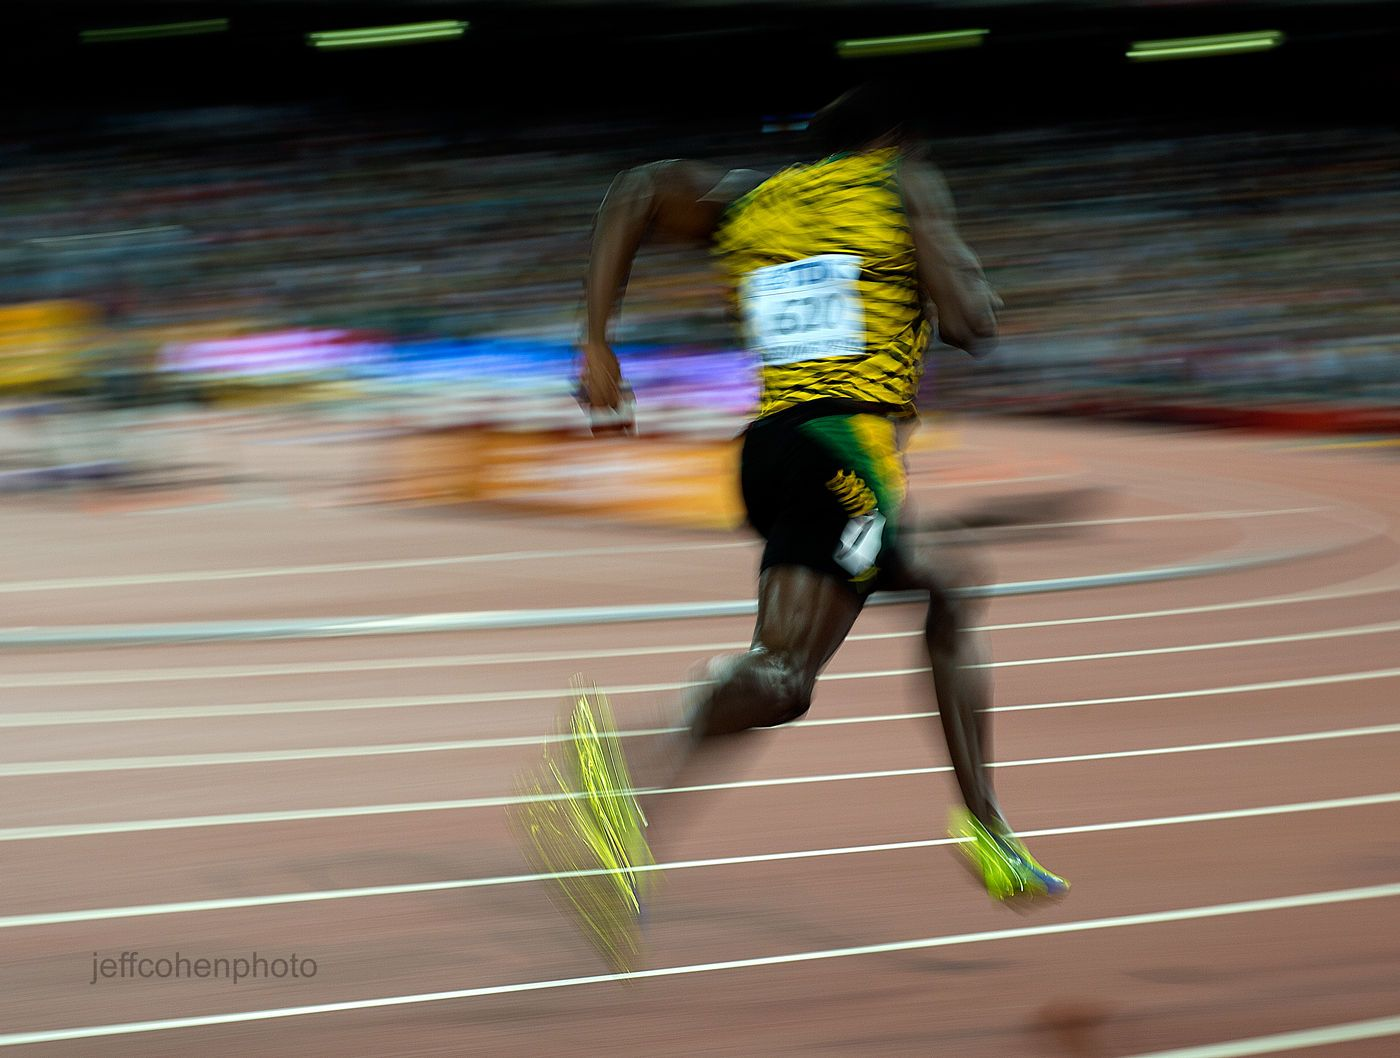 1beijing2015_night__5_usain_bolt_200m_jeff_cohen_photo_21724_recovered.jpg